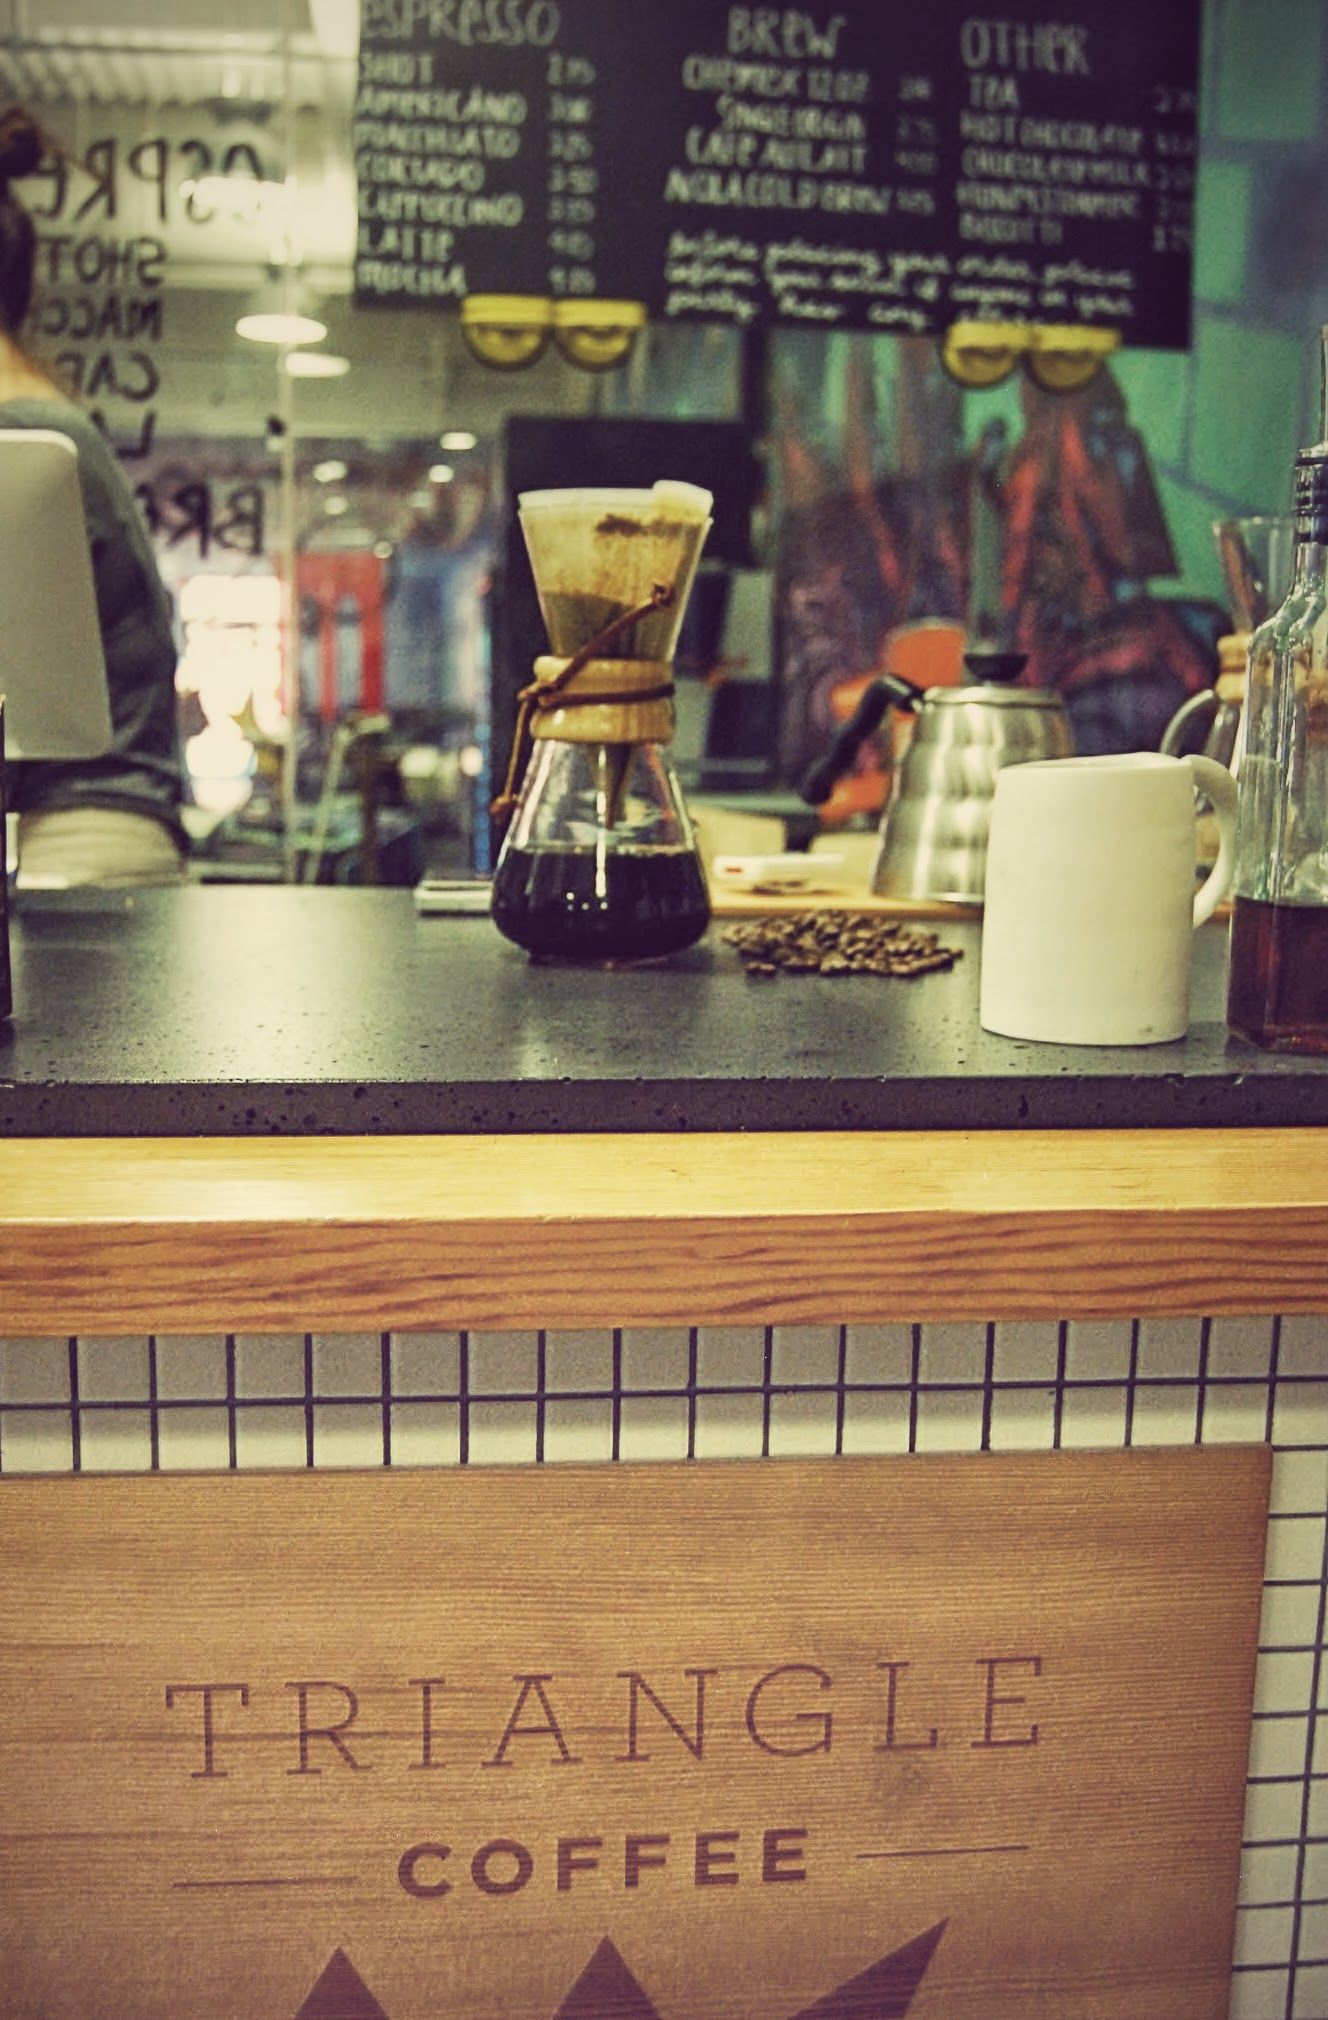 Triangle Coffee opened on September 1st, 2014 and steadily serves about 40 customers aday during the week.